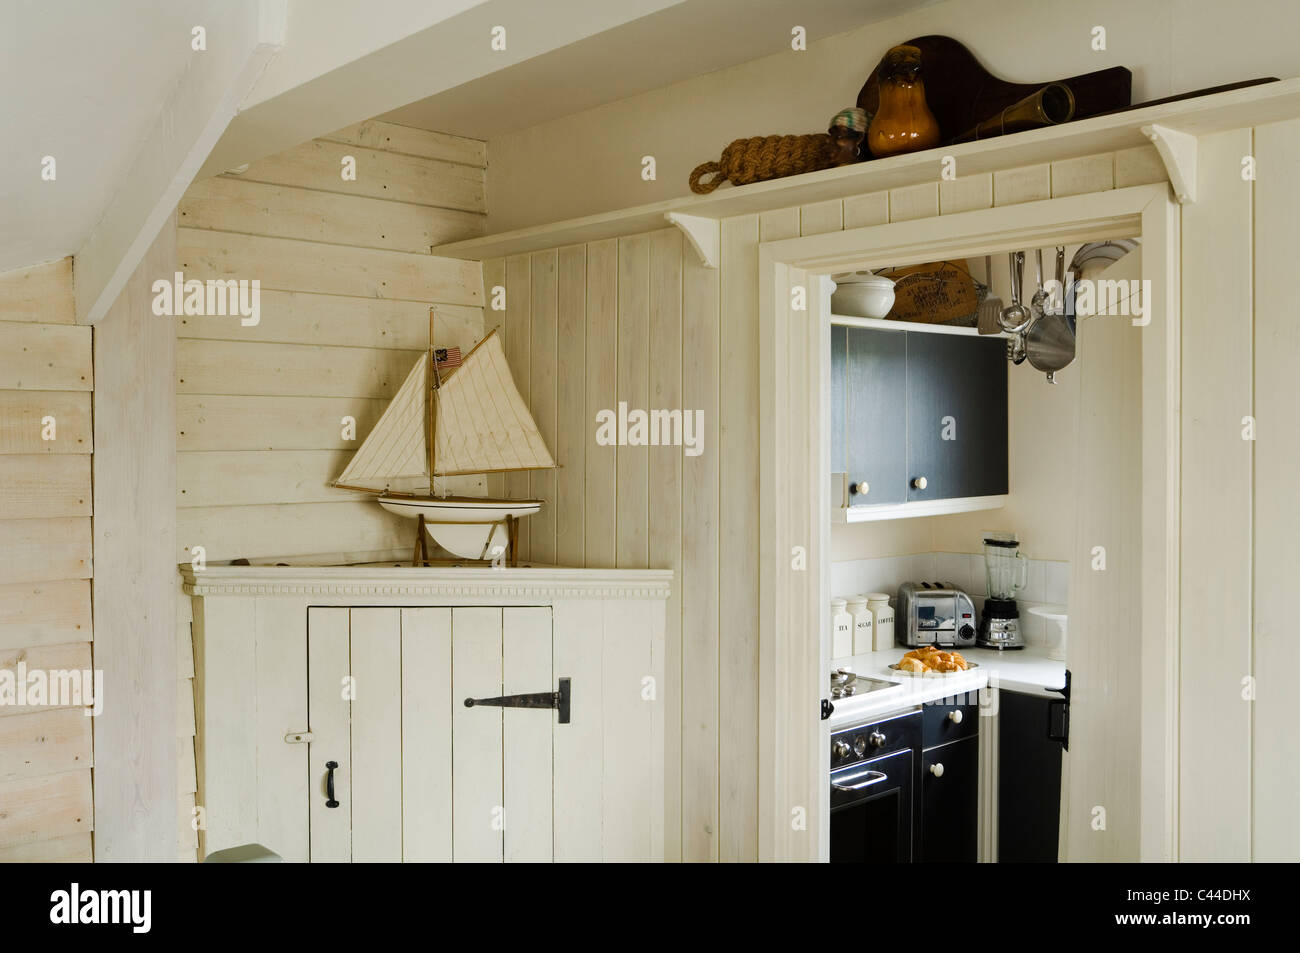 Wood panelled room corner with boat model and view through to kitchen - Stock Image